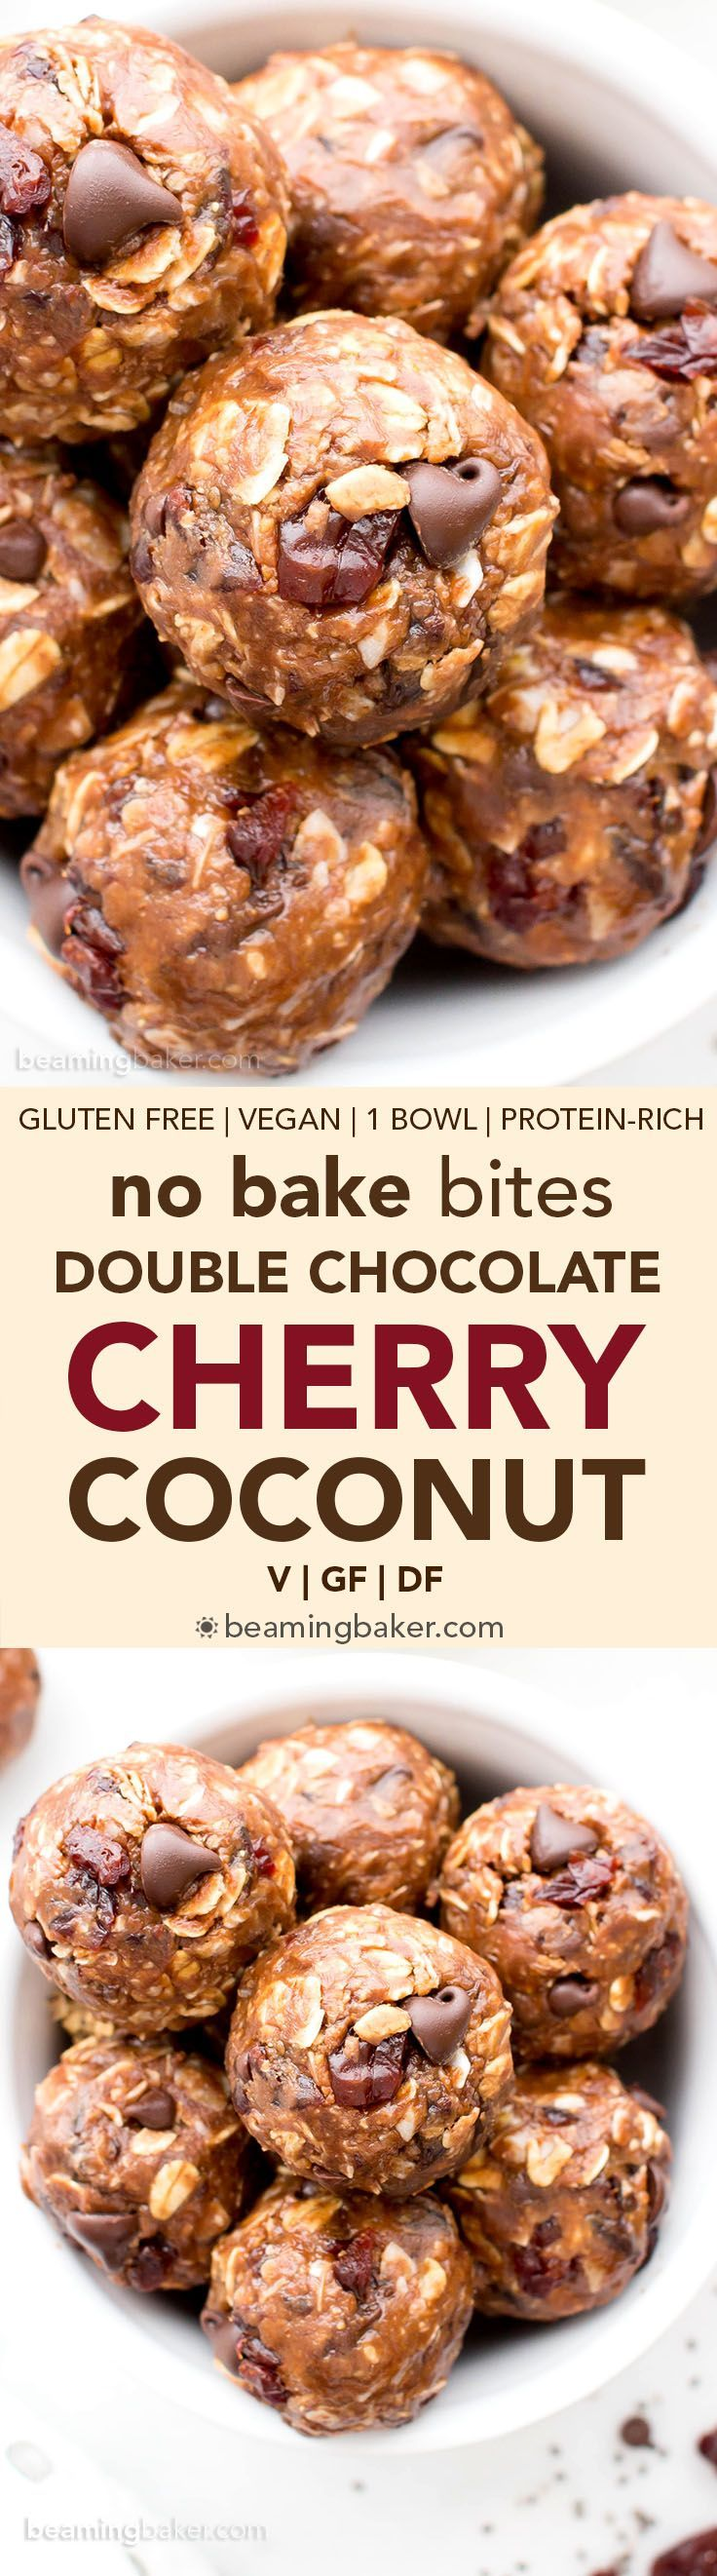 No Bake Double Chocolate Cherry Coconut Energy Bites (V, GF): a one bowl recipe for deliciously satisfying, protein-rich energy bites that taste like cherry chocolate pie. #Vegan #GlutenFree #DairyFree #ProteinPacked | BeamingBaker.com